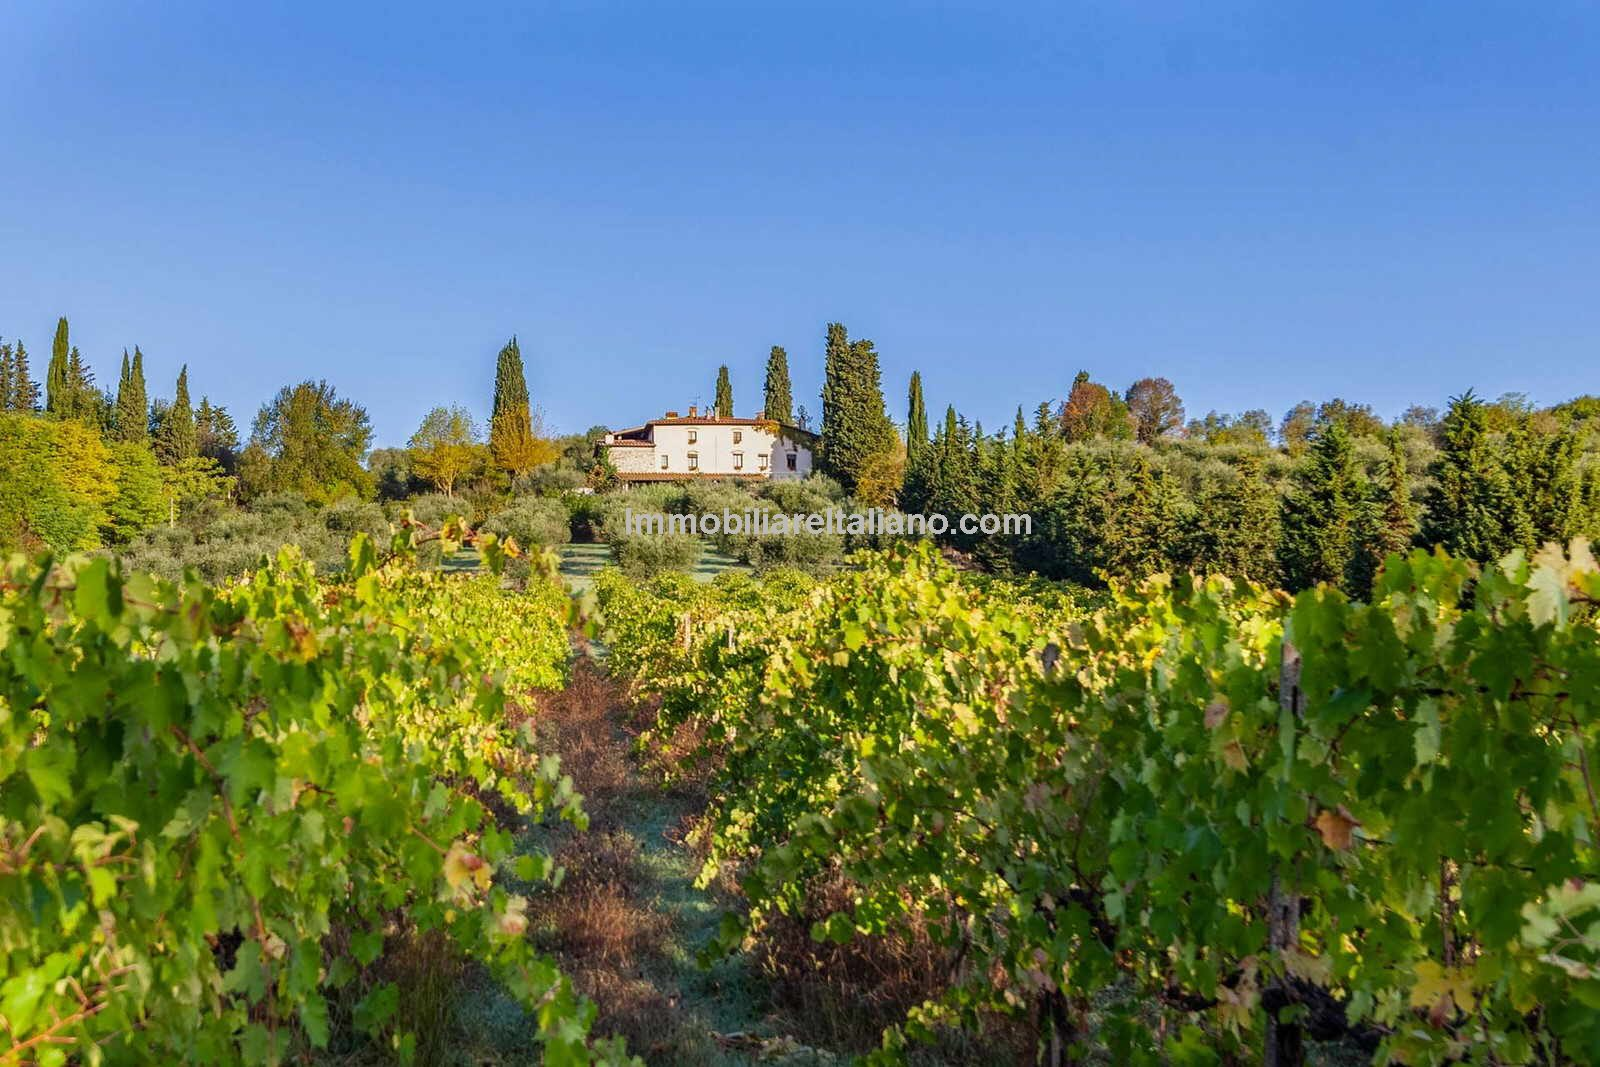 Priced to sell. Tourist and farm business in Tuscany Italy for sale. Agriturismo with 11 bedrooms overall, gardens, swimming pool